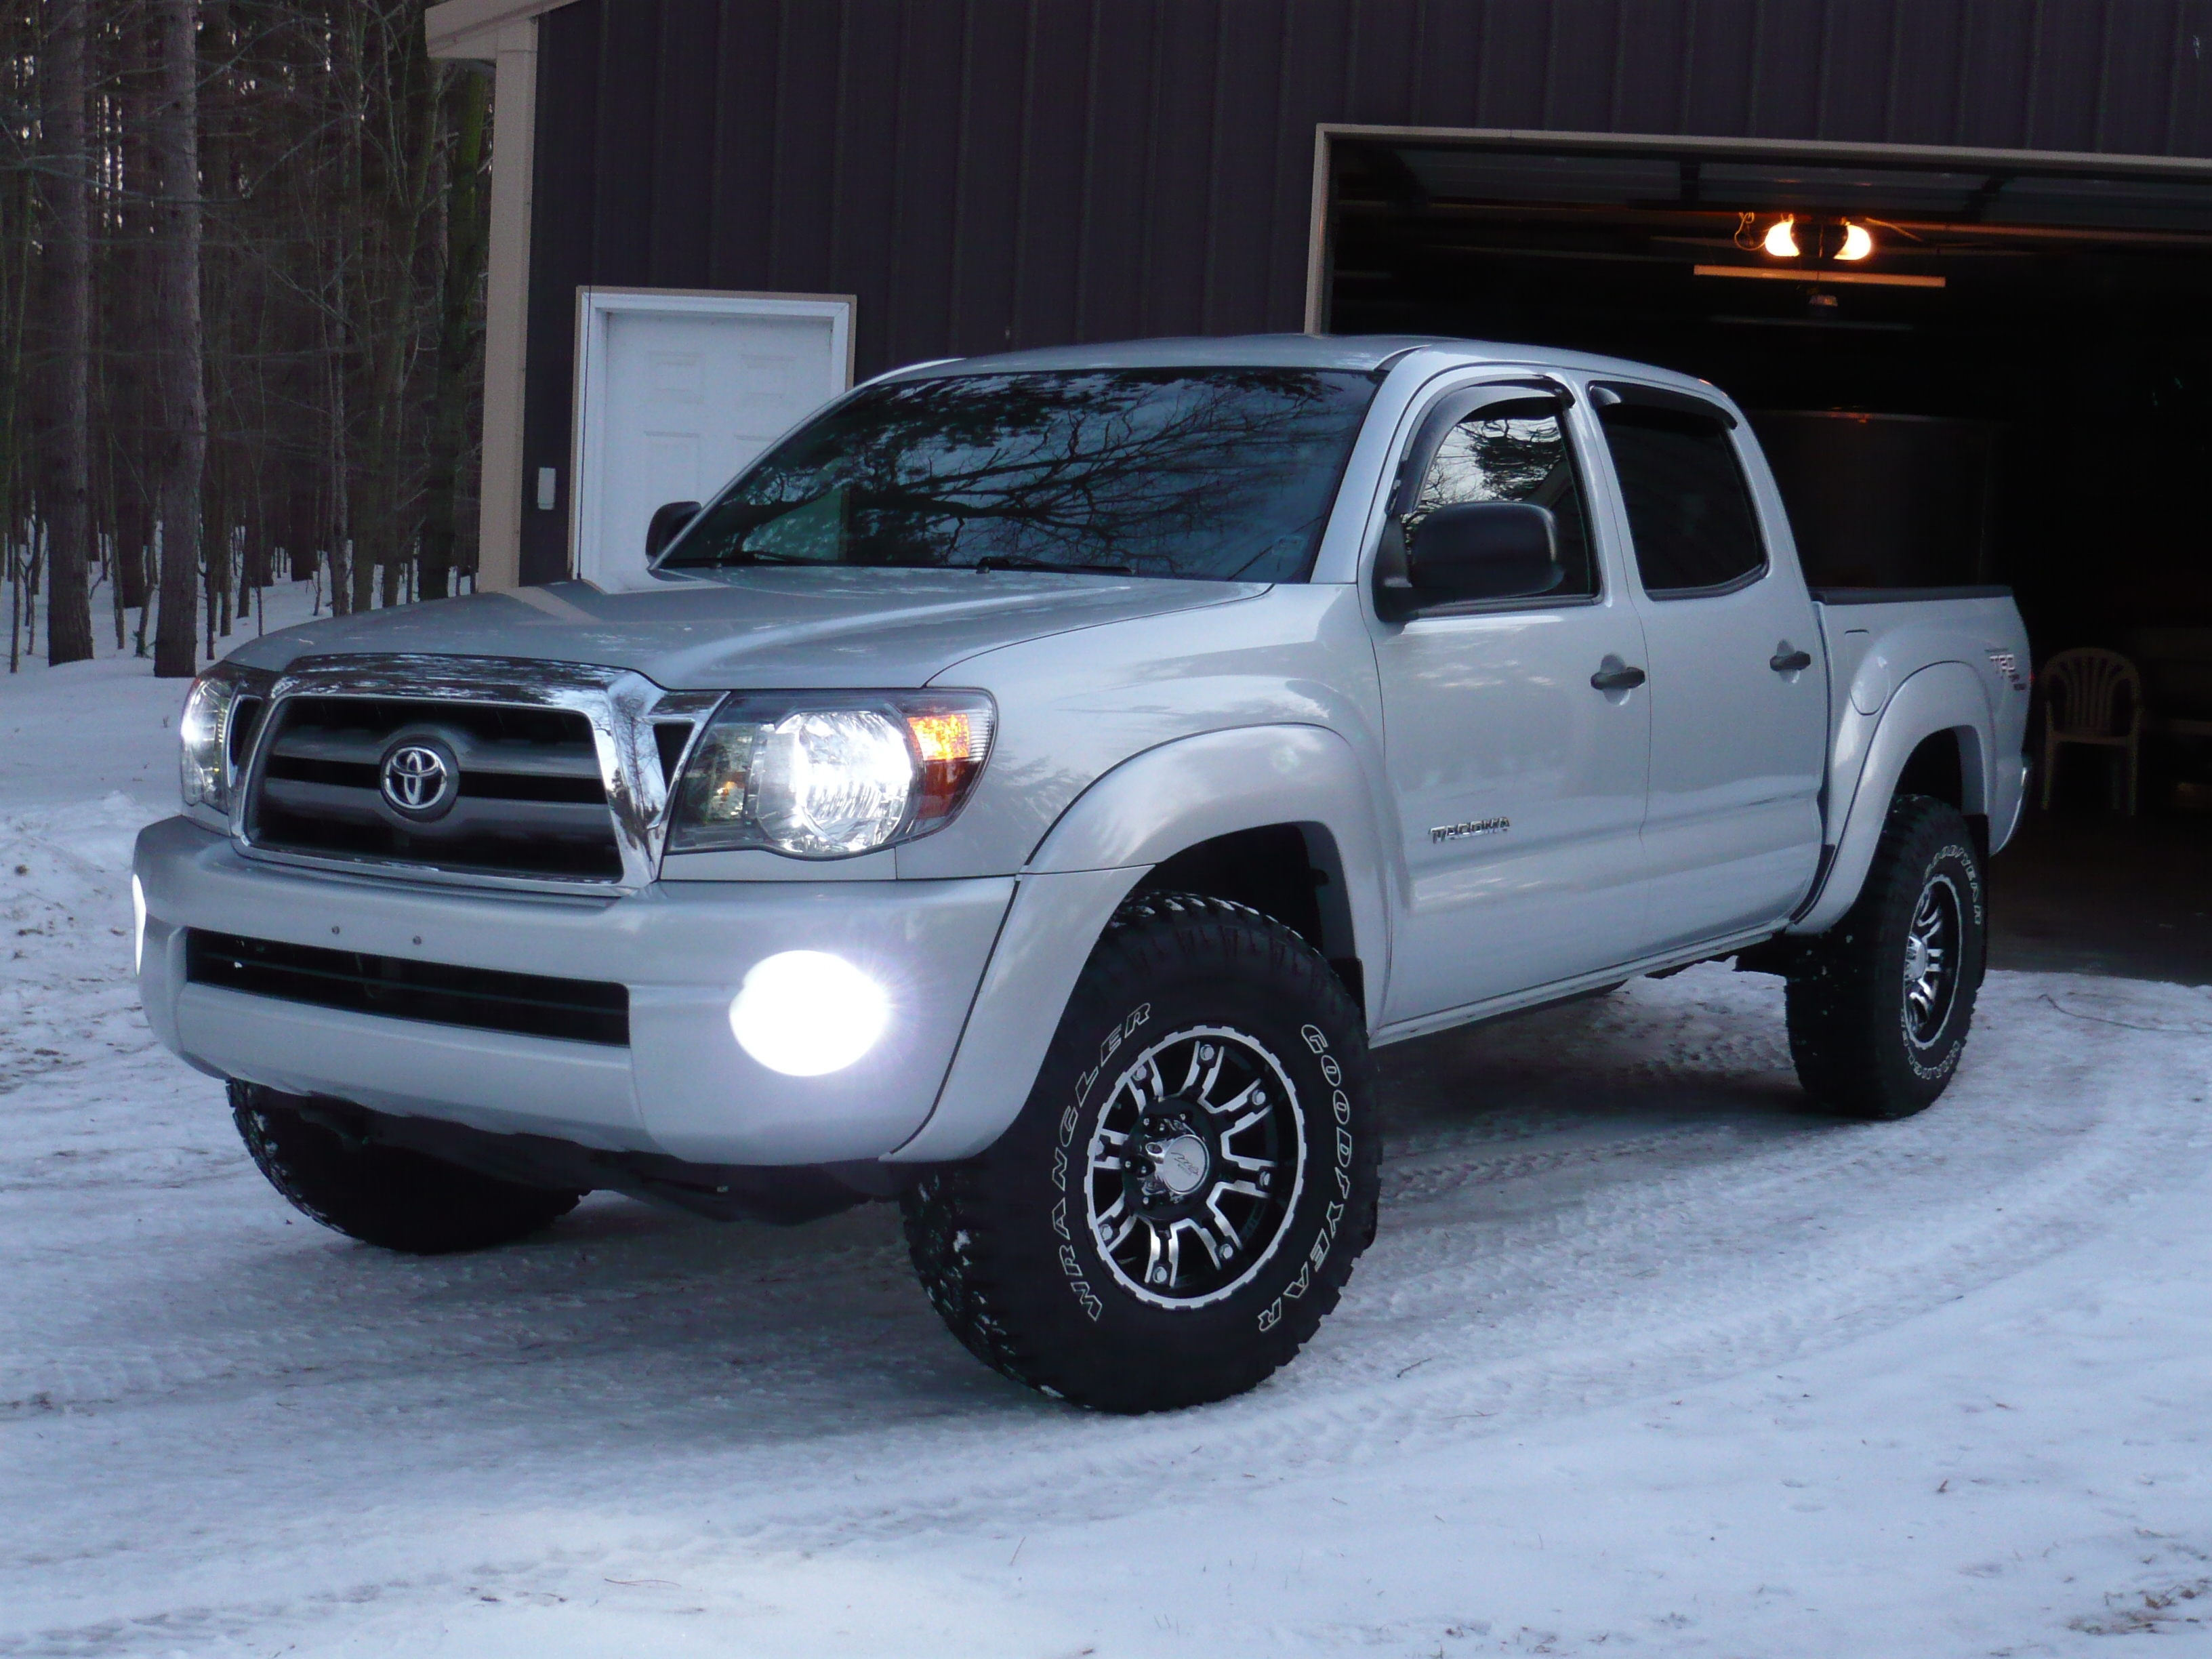 Shawnfrontier 2009 toyota tacoma double cabpickup 4d 5 ft - 2013 toyota tacoma interior accessories ...